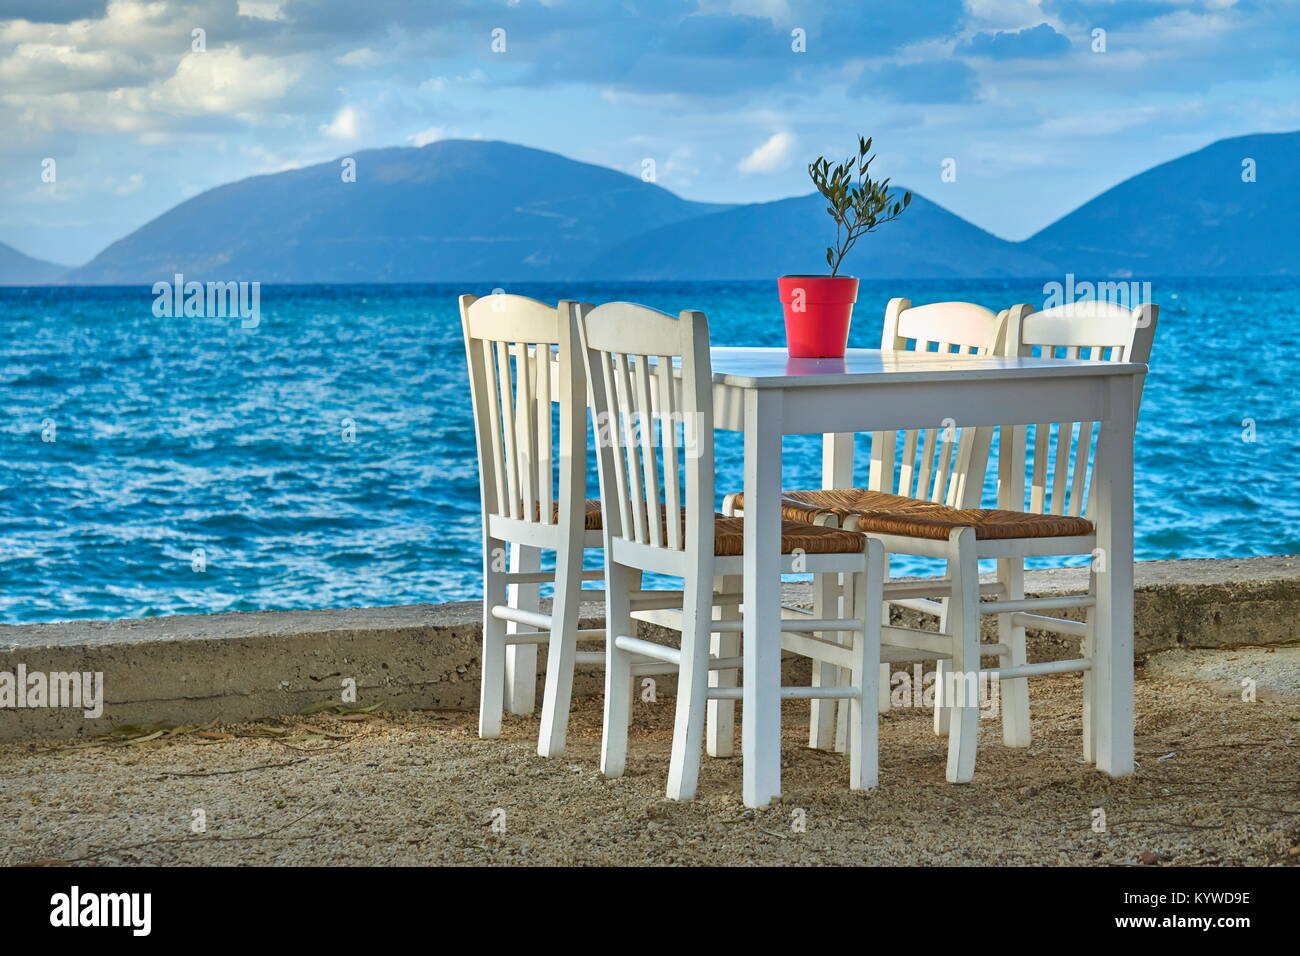 Table with chairs in traditional Greek tavern, Sami, Kefalonia Island, Greece - Stock Image